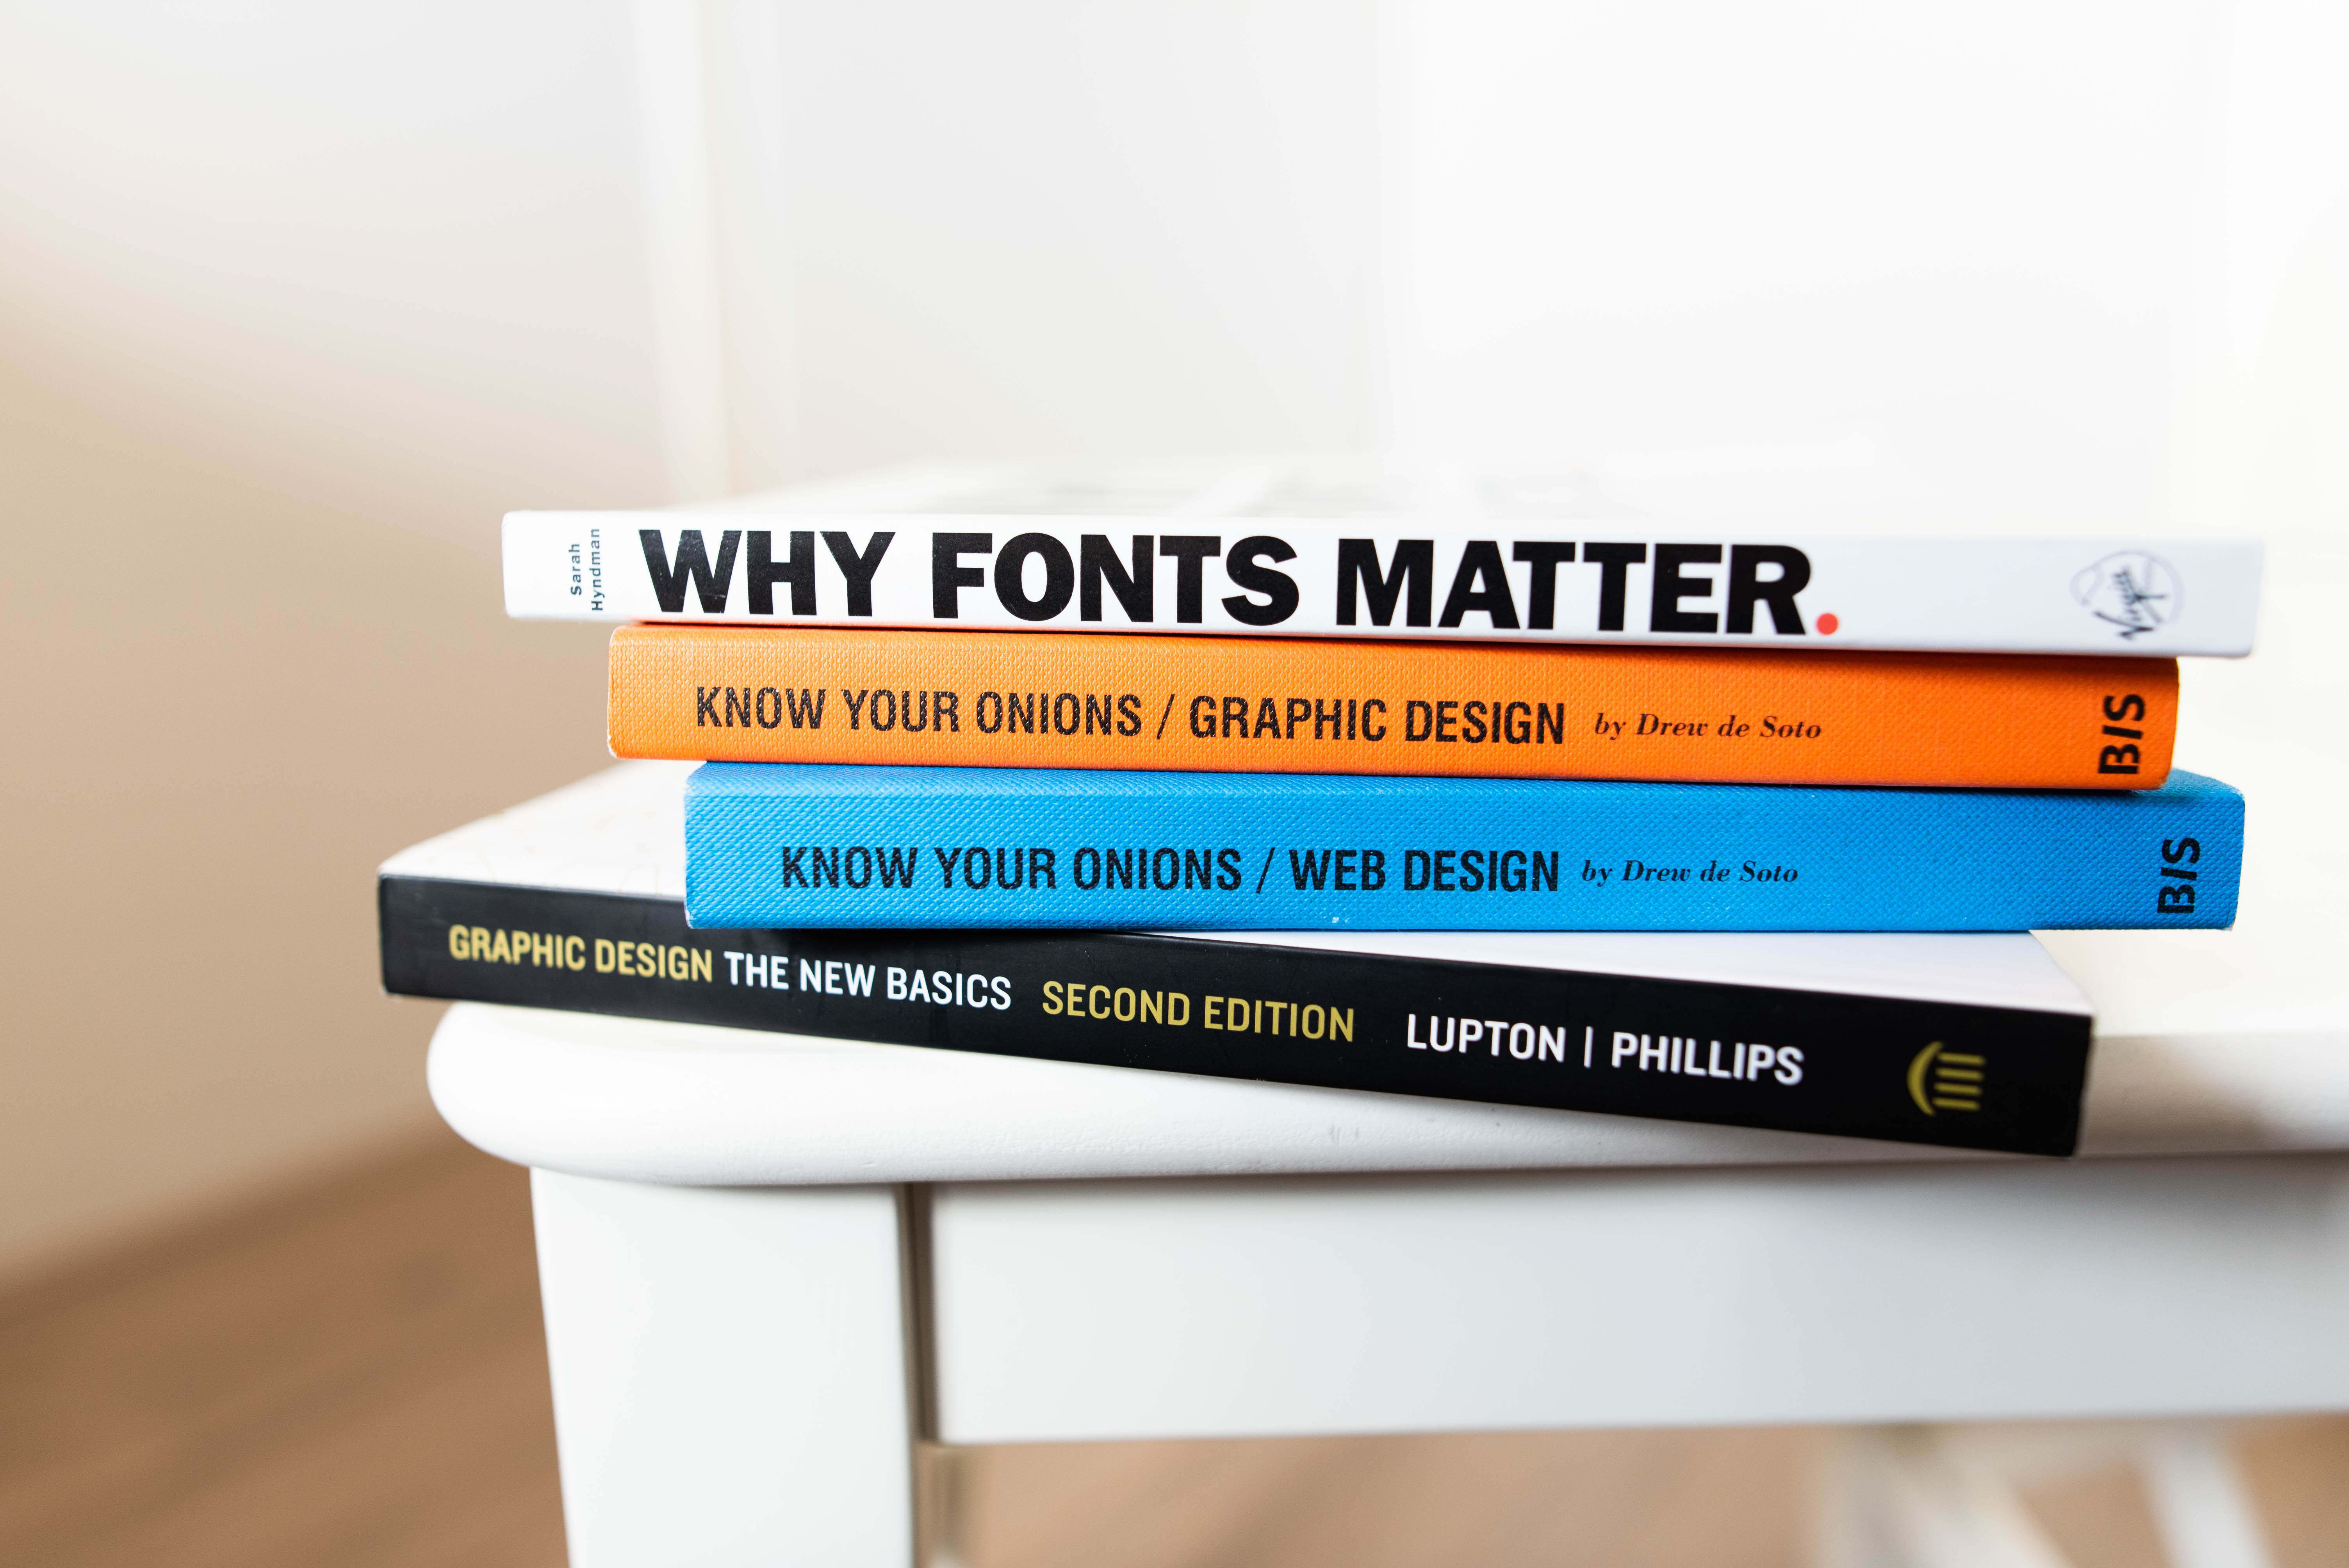 Stack of books about design, including one titled 'Why Fonts Matter'